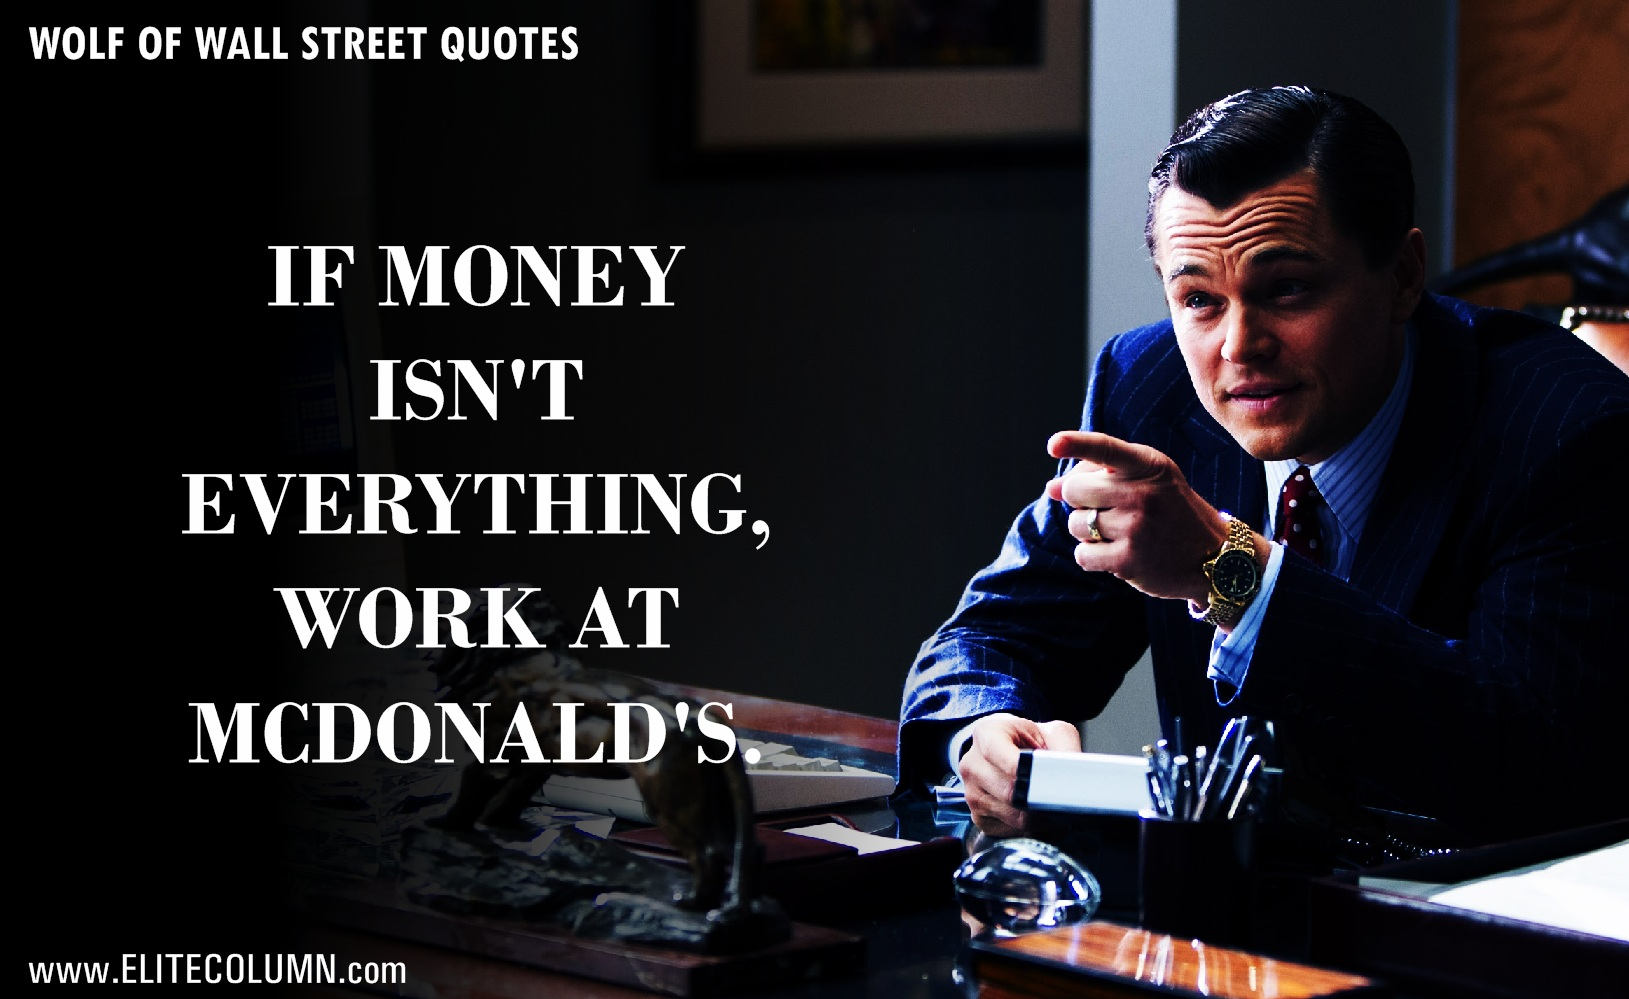 The Wolf Of Wall Street Quotes (3)